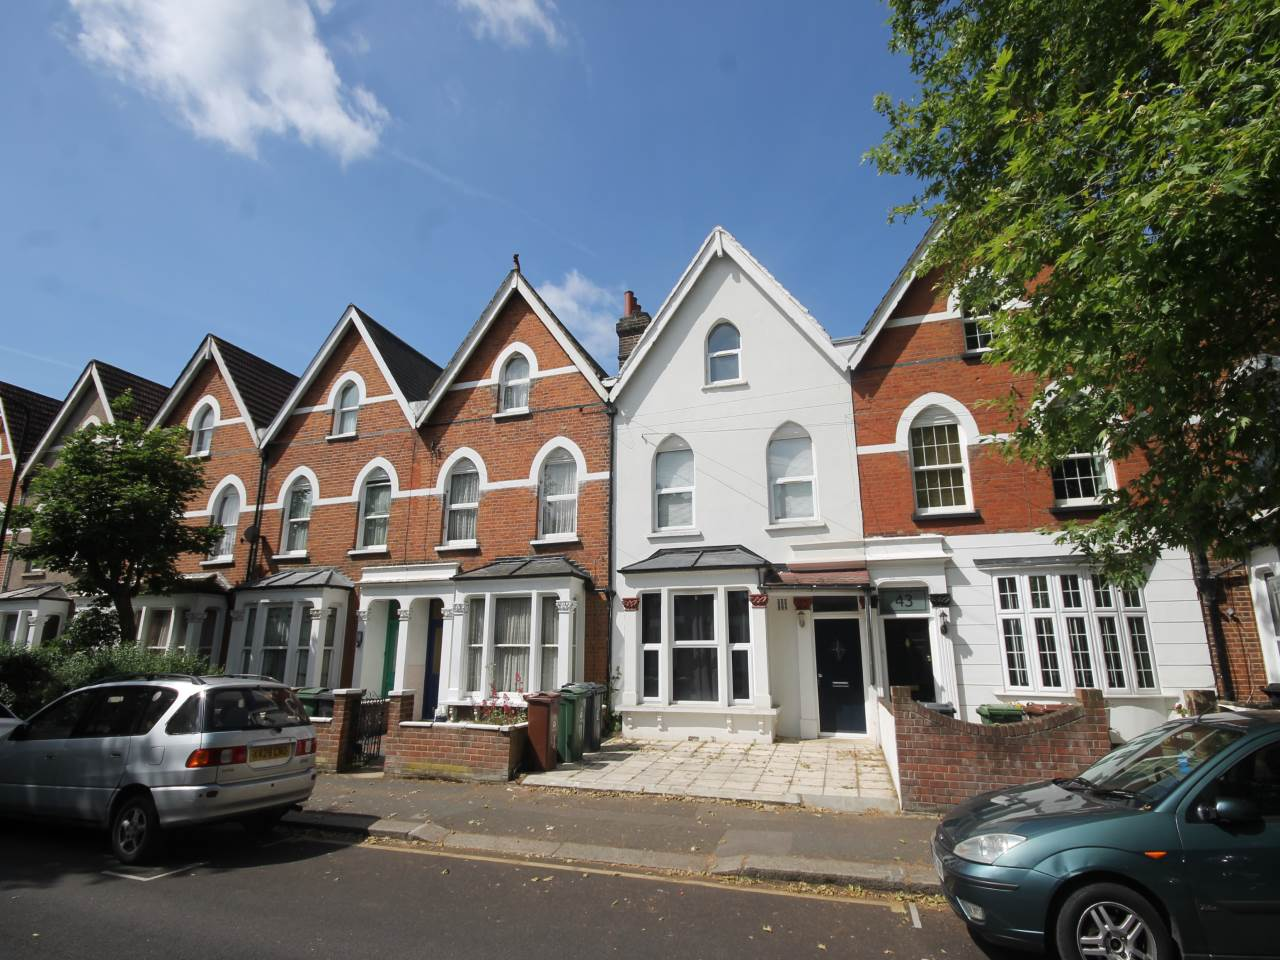 4 bed house to rent in Walthamstow, E17